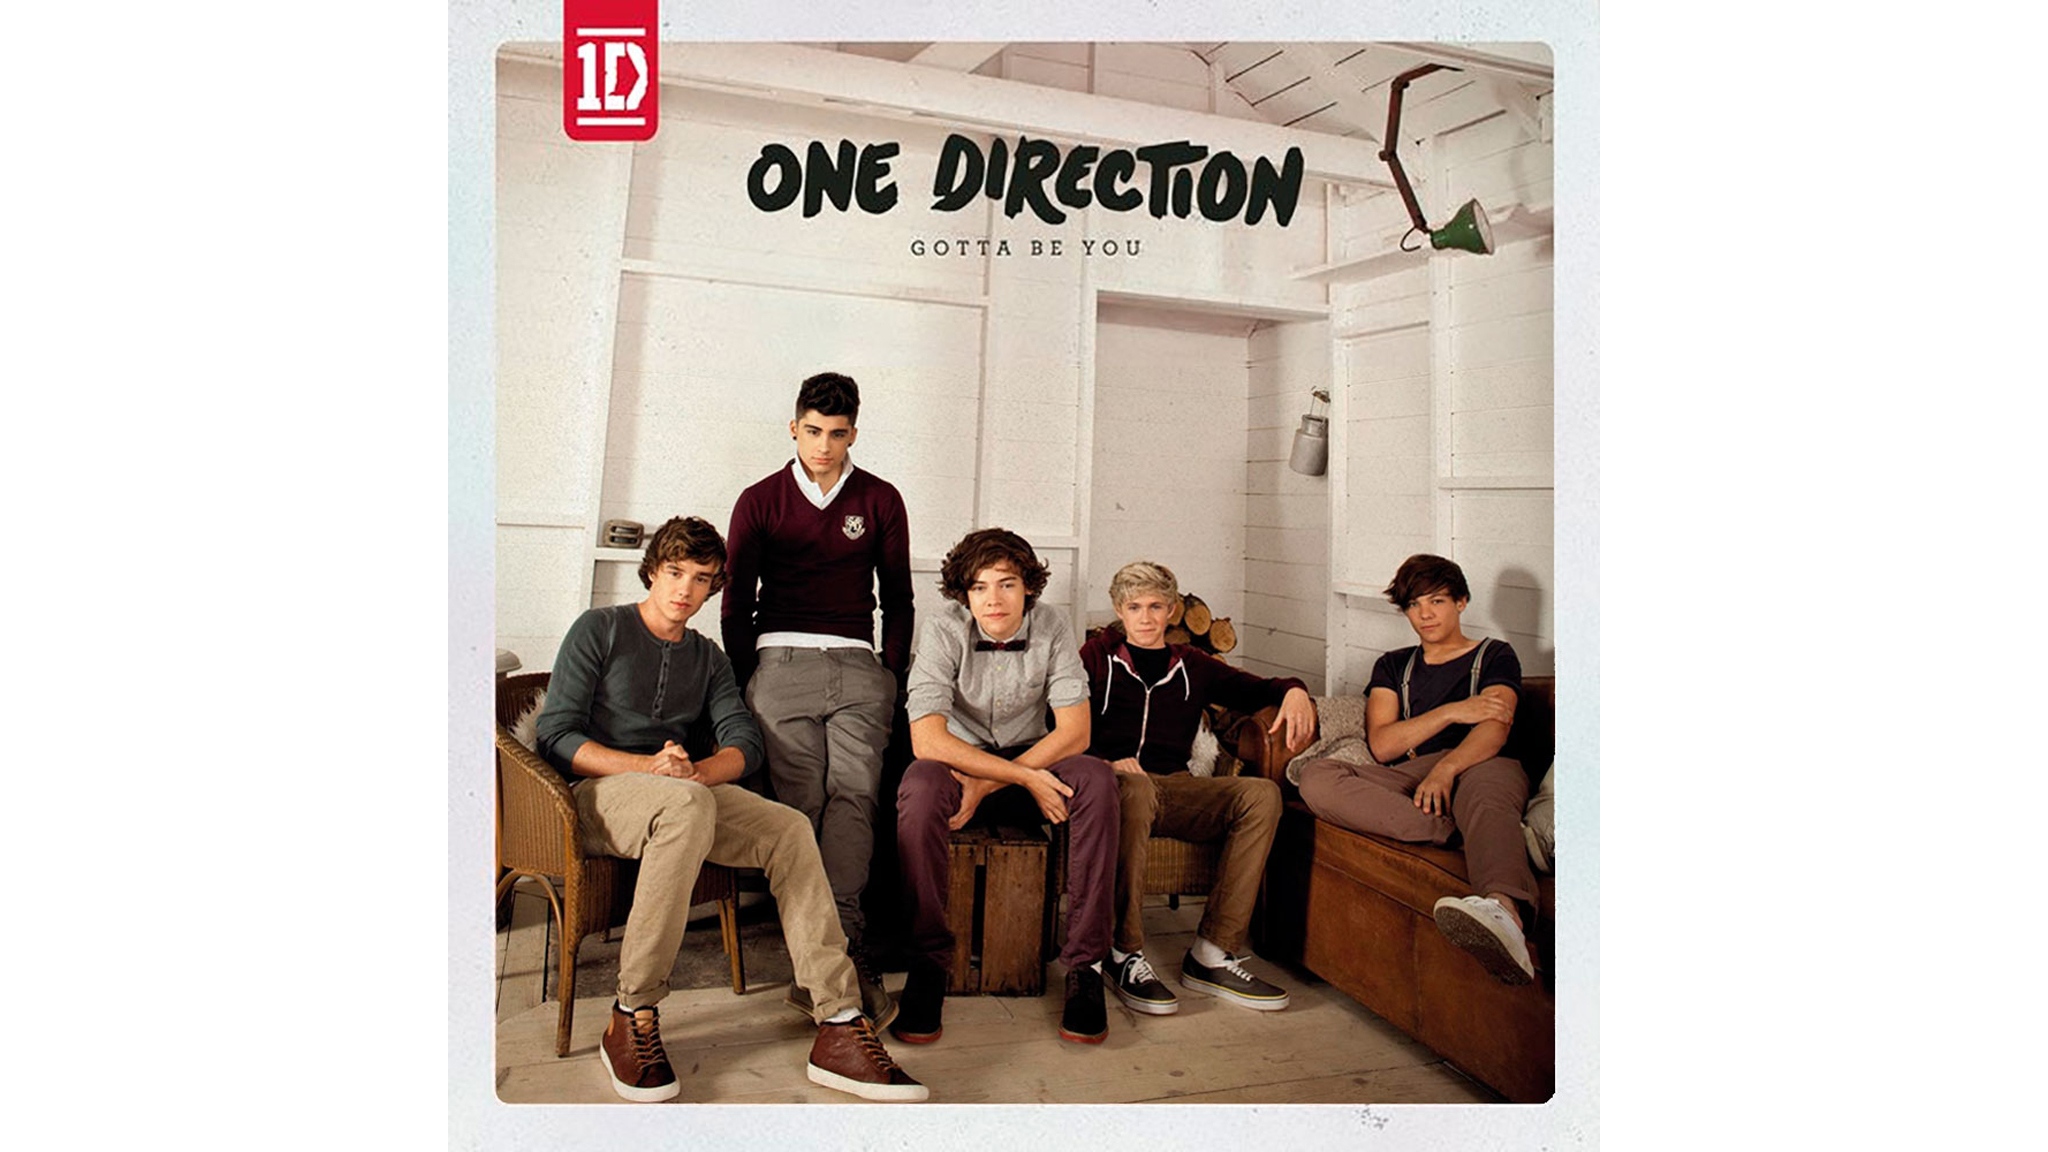 gotta be you, one direction